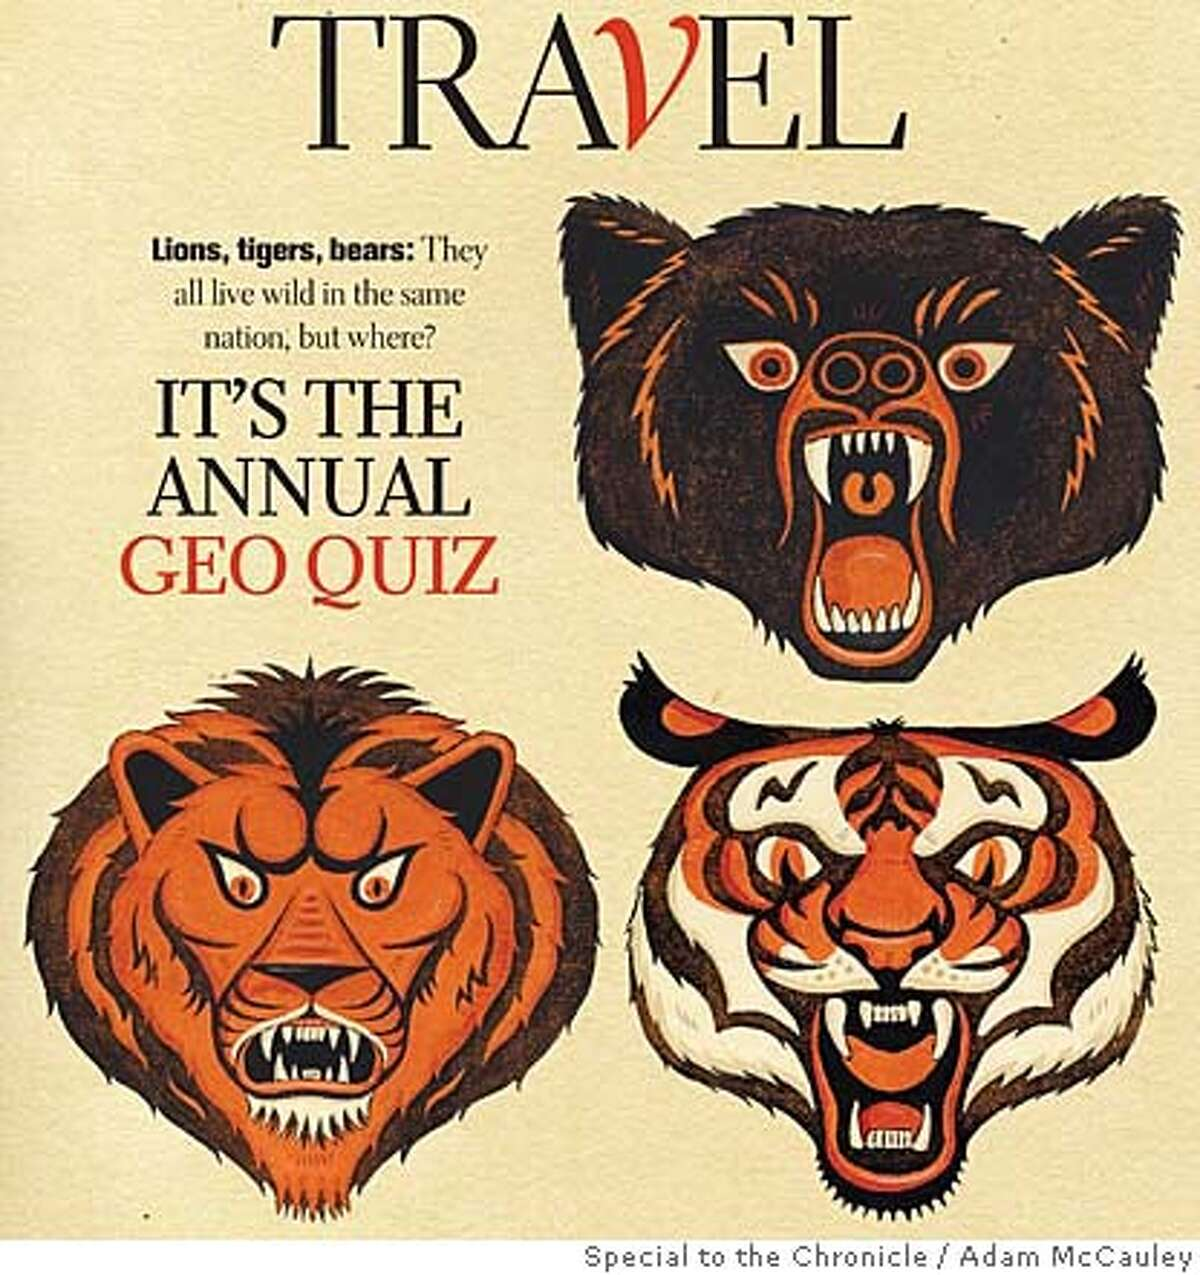 It's the annual Geo Quiz. Illustration by Adam McCauley, special to the Chronicle